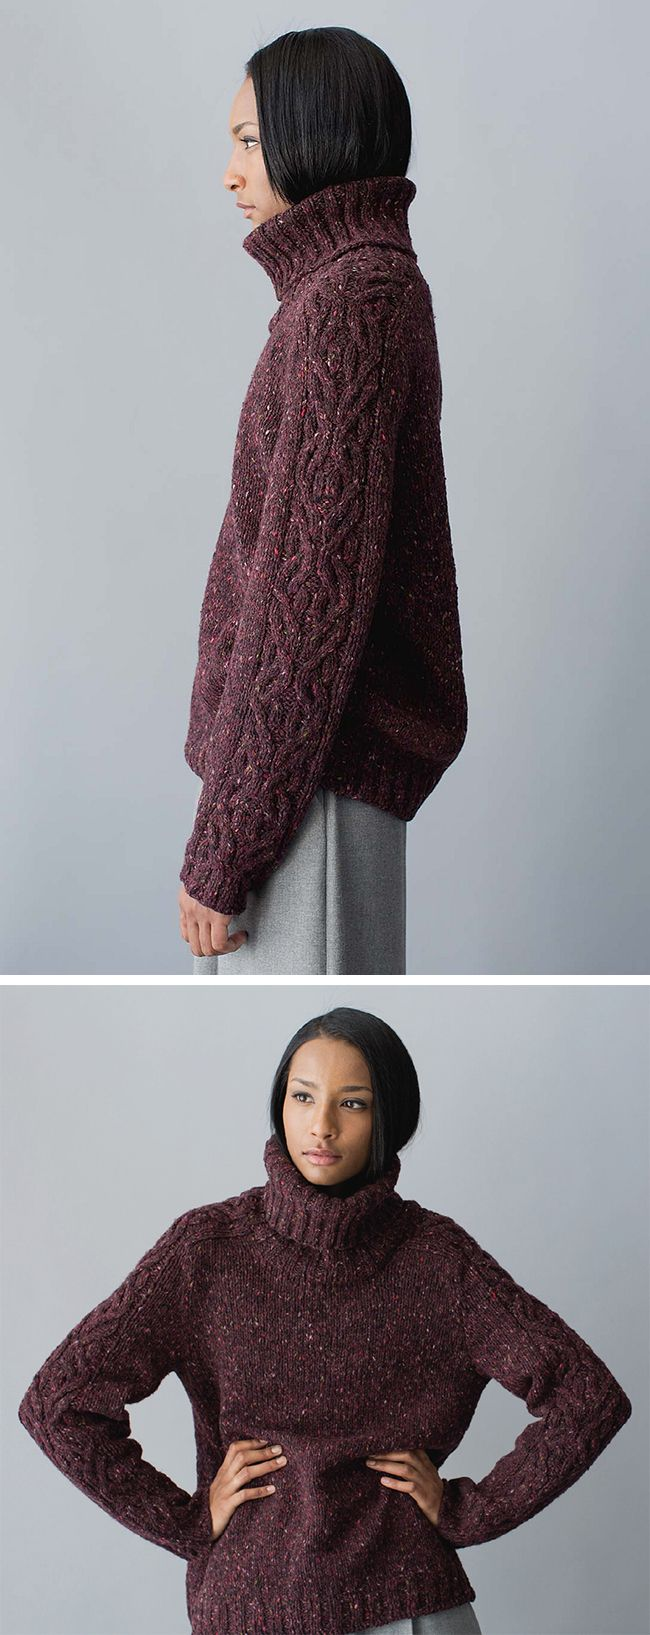 Michele Wang has been teasing the internet with the her latest collection lately, and yesterday it materialized as the newest edition of Interweave's Wool Studio. The whole thing is menswear-…